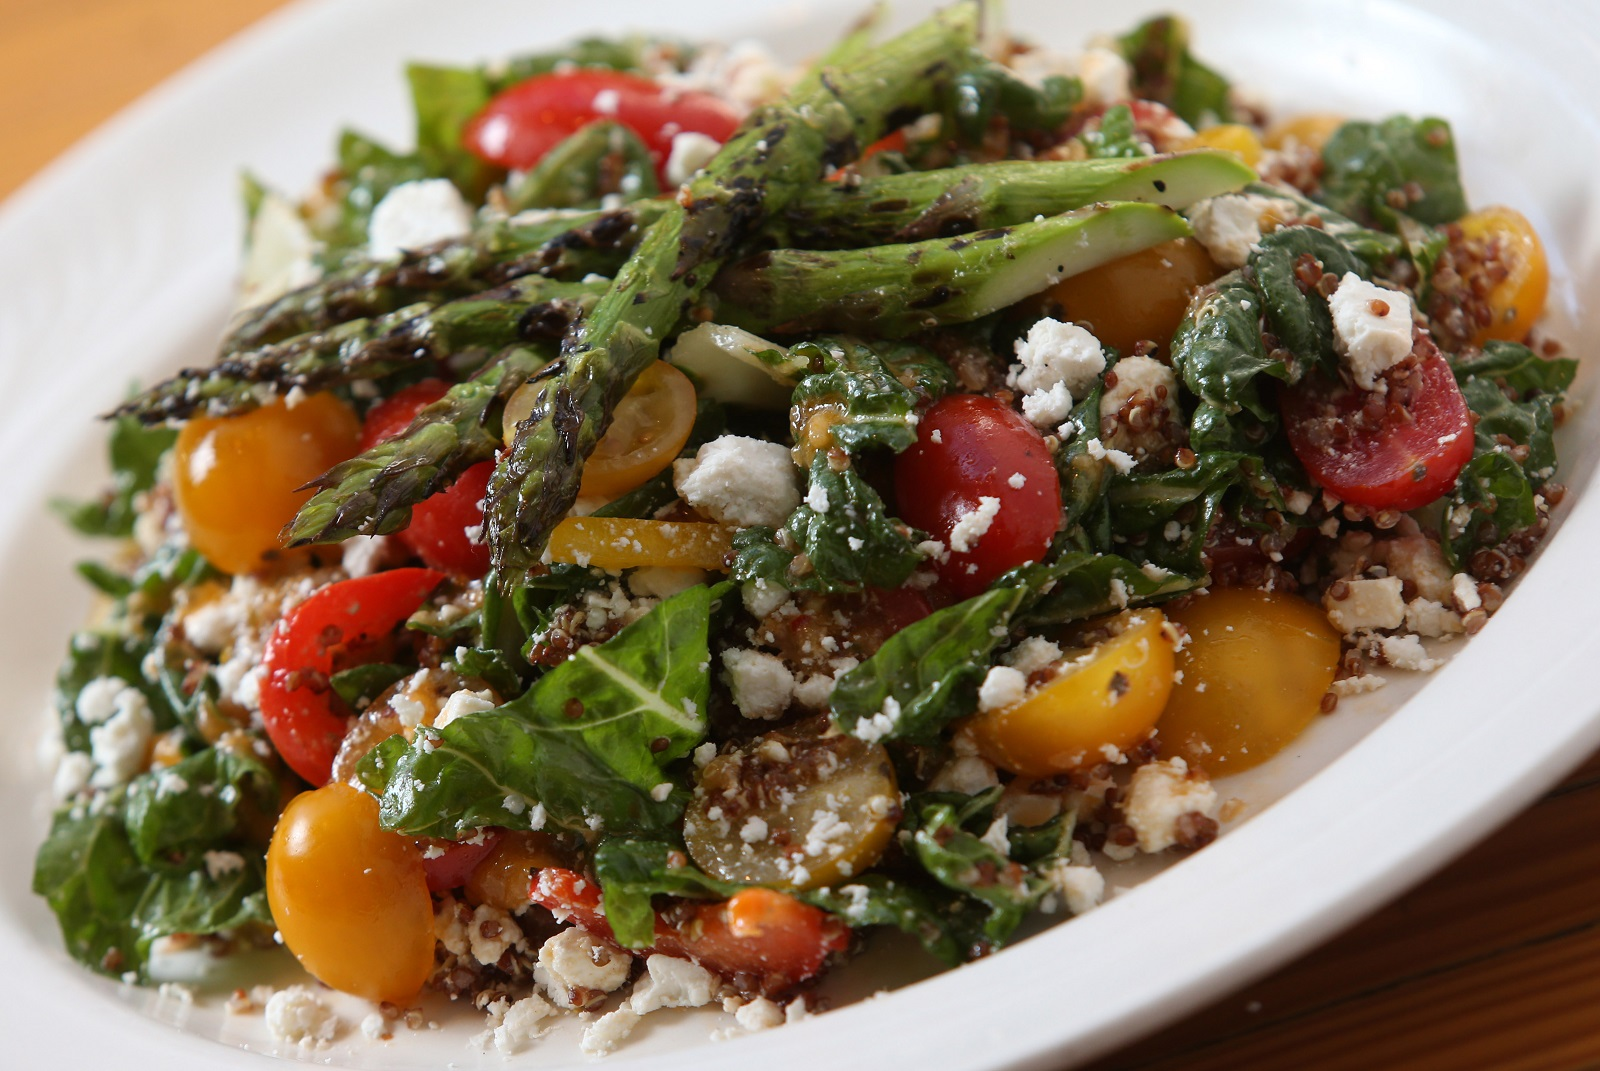 Osteria 166 offers the insalada potenza, which is made with Swiss chard tossed with red quinoa, cucumber, child roasted peppers, roasted cauliflower, asparagus and feta cheese and blood orange vinaigrette.  (Sharon Cantillon/Buffalo News)